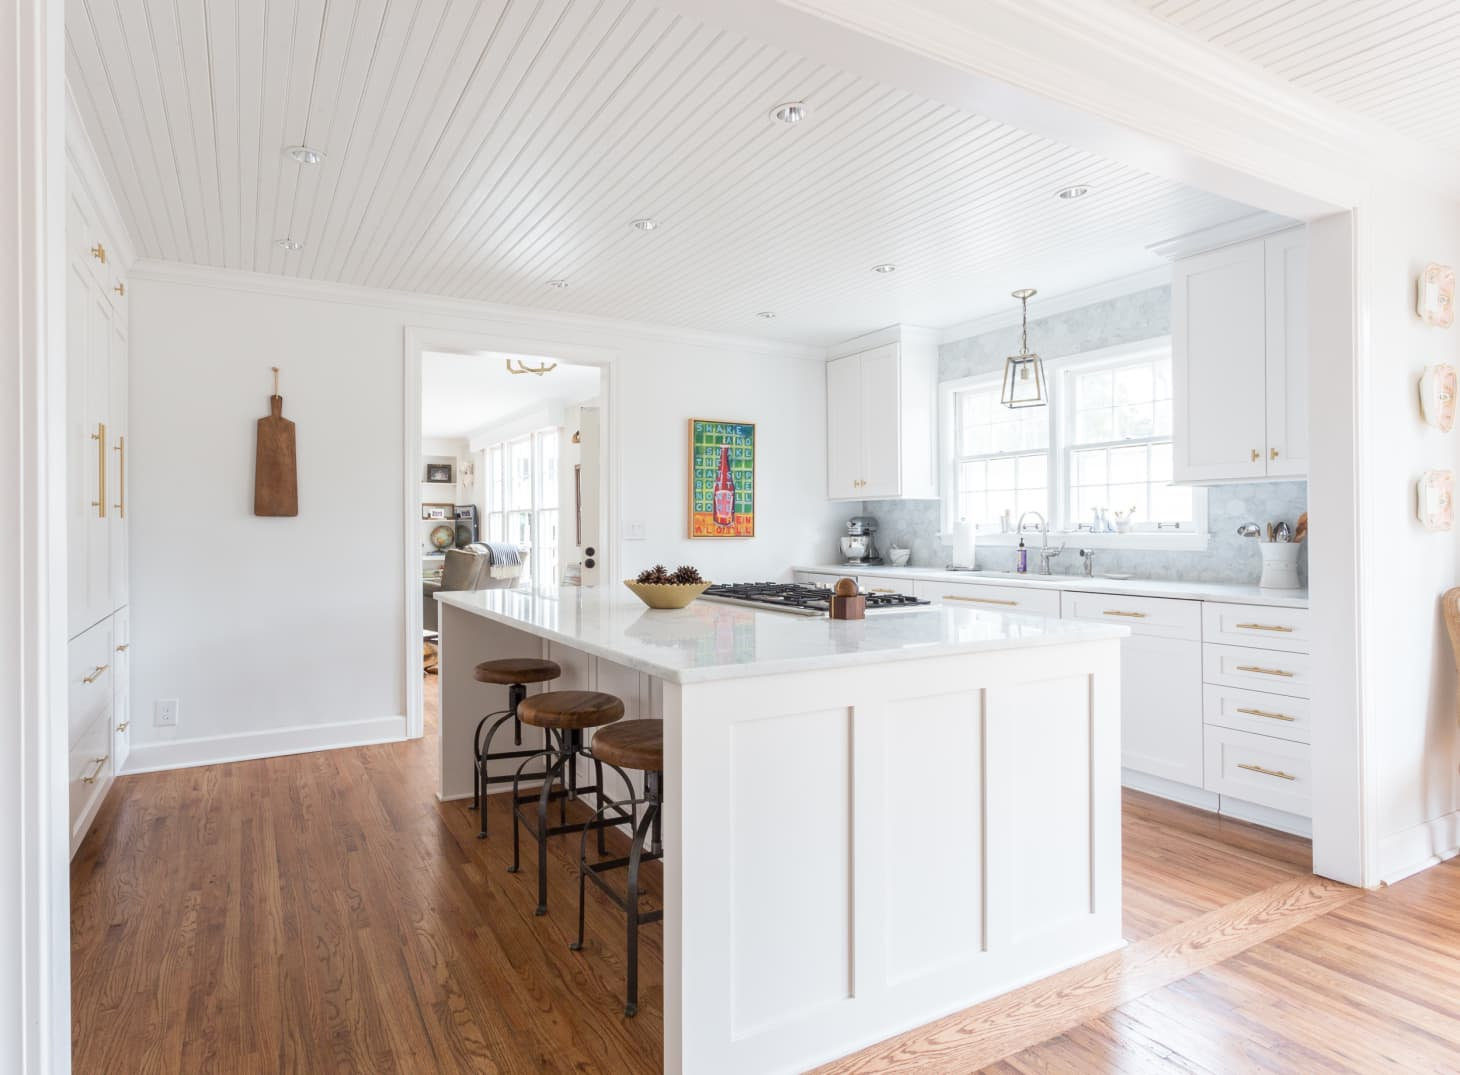 What is Shiplap - Photos, Design Ideas, Inspiration